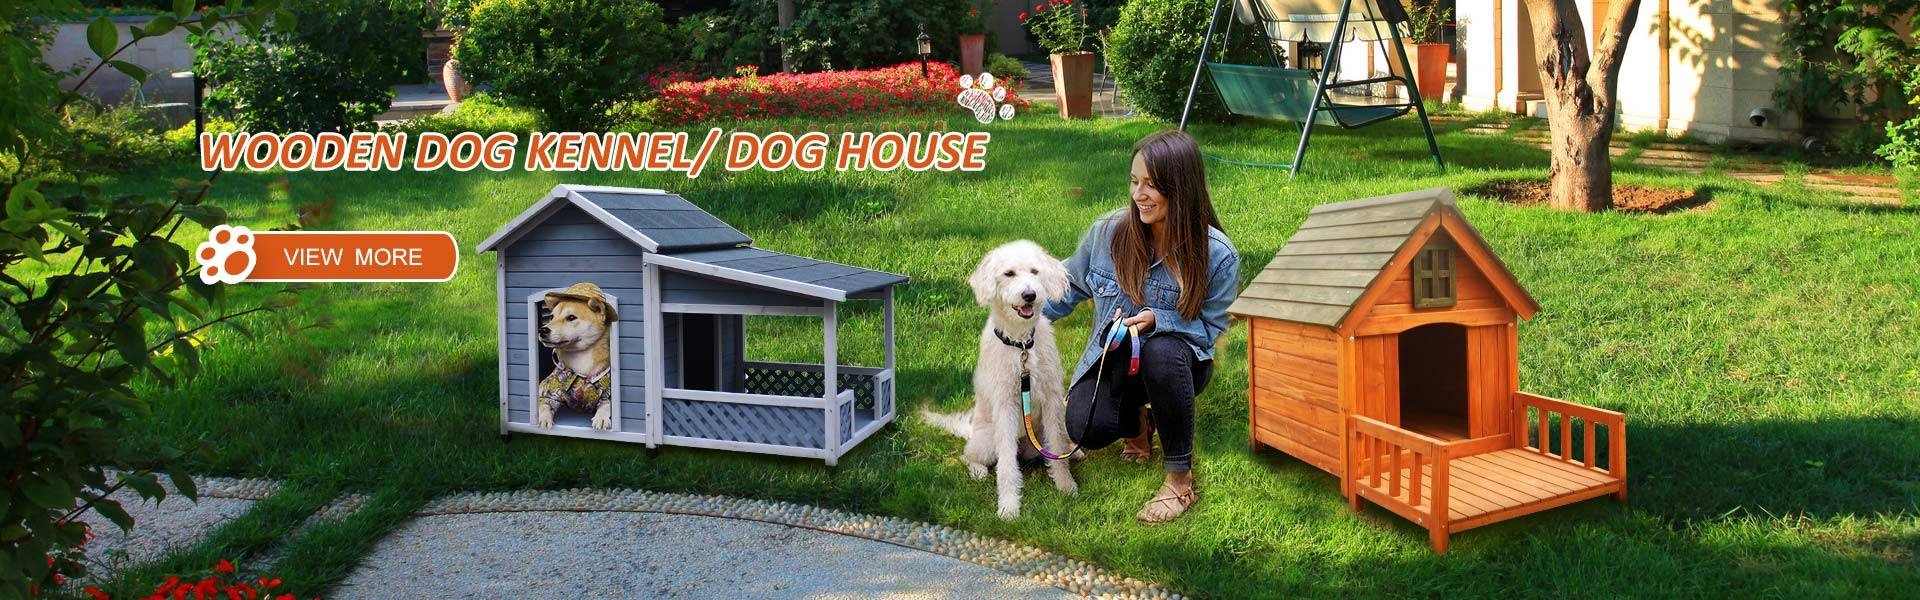 Wooden dog kennel/ dog house